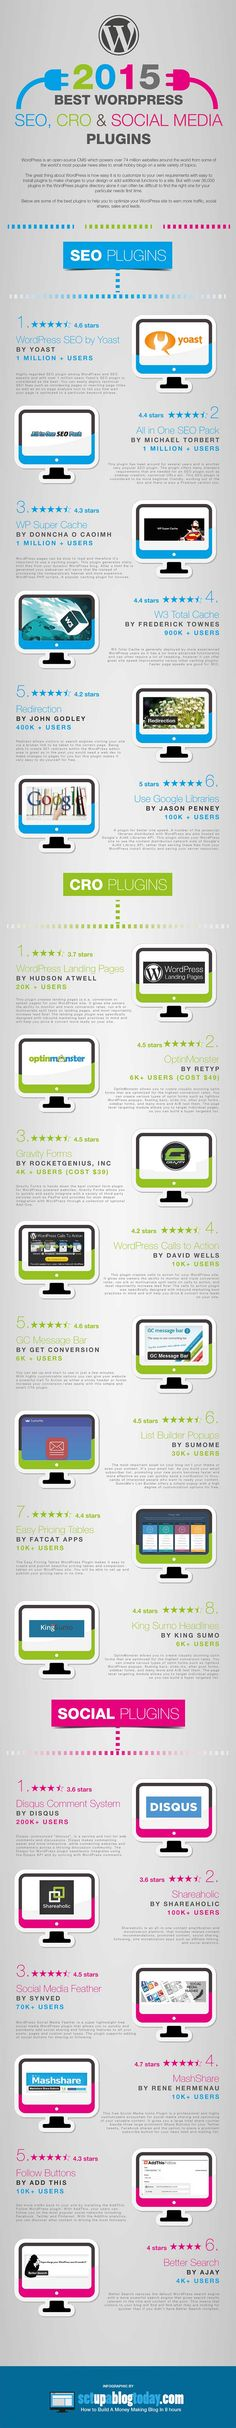 Not quite 2015's Best Wordpress Plugins for SEO, CRO, and Social.. but I pinned it anyway... #WordPress #Plugins #InfoGraphic